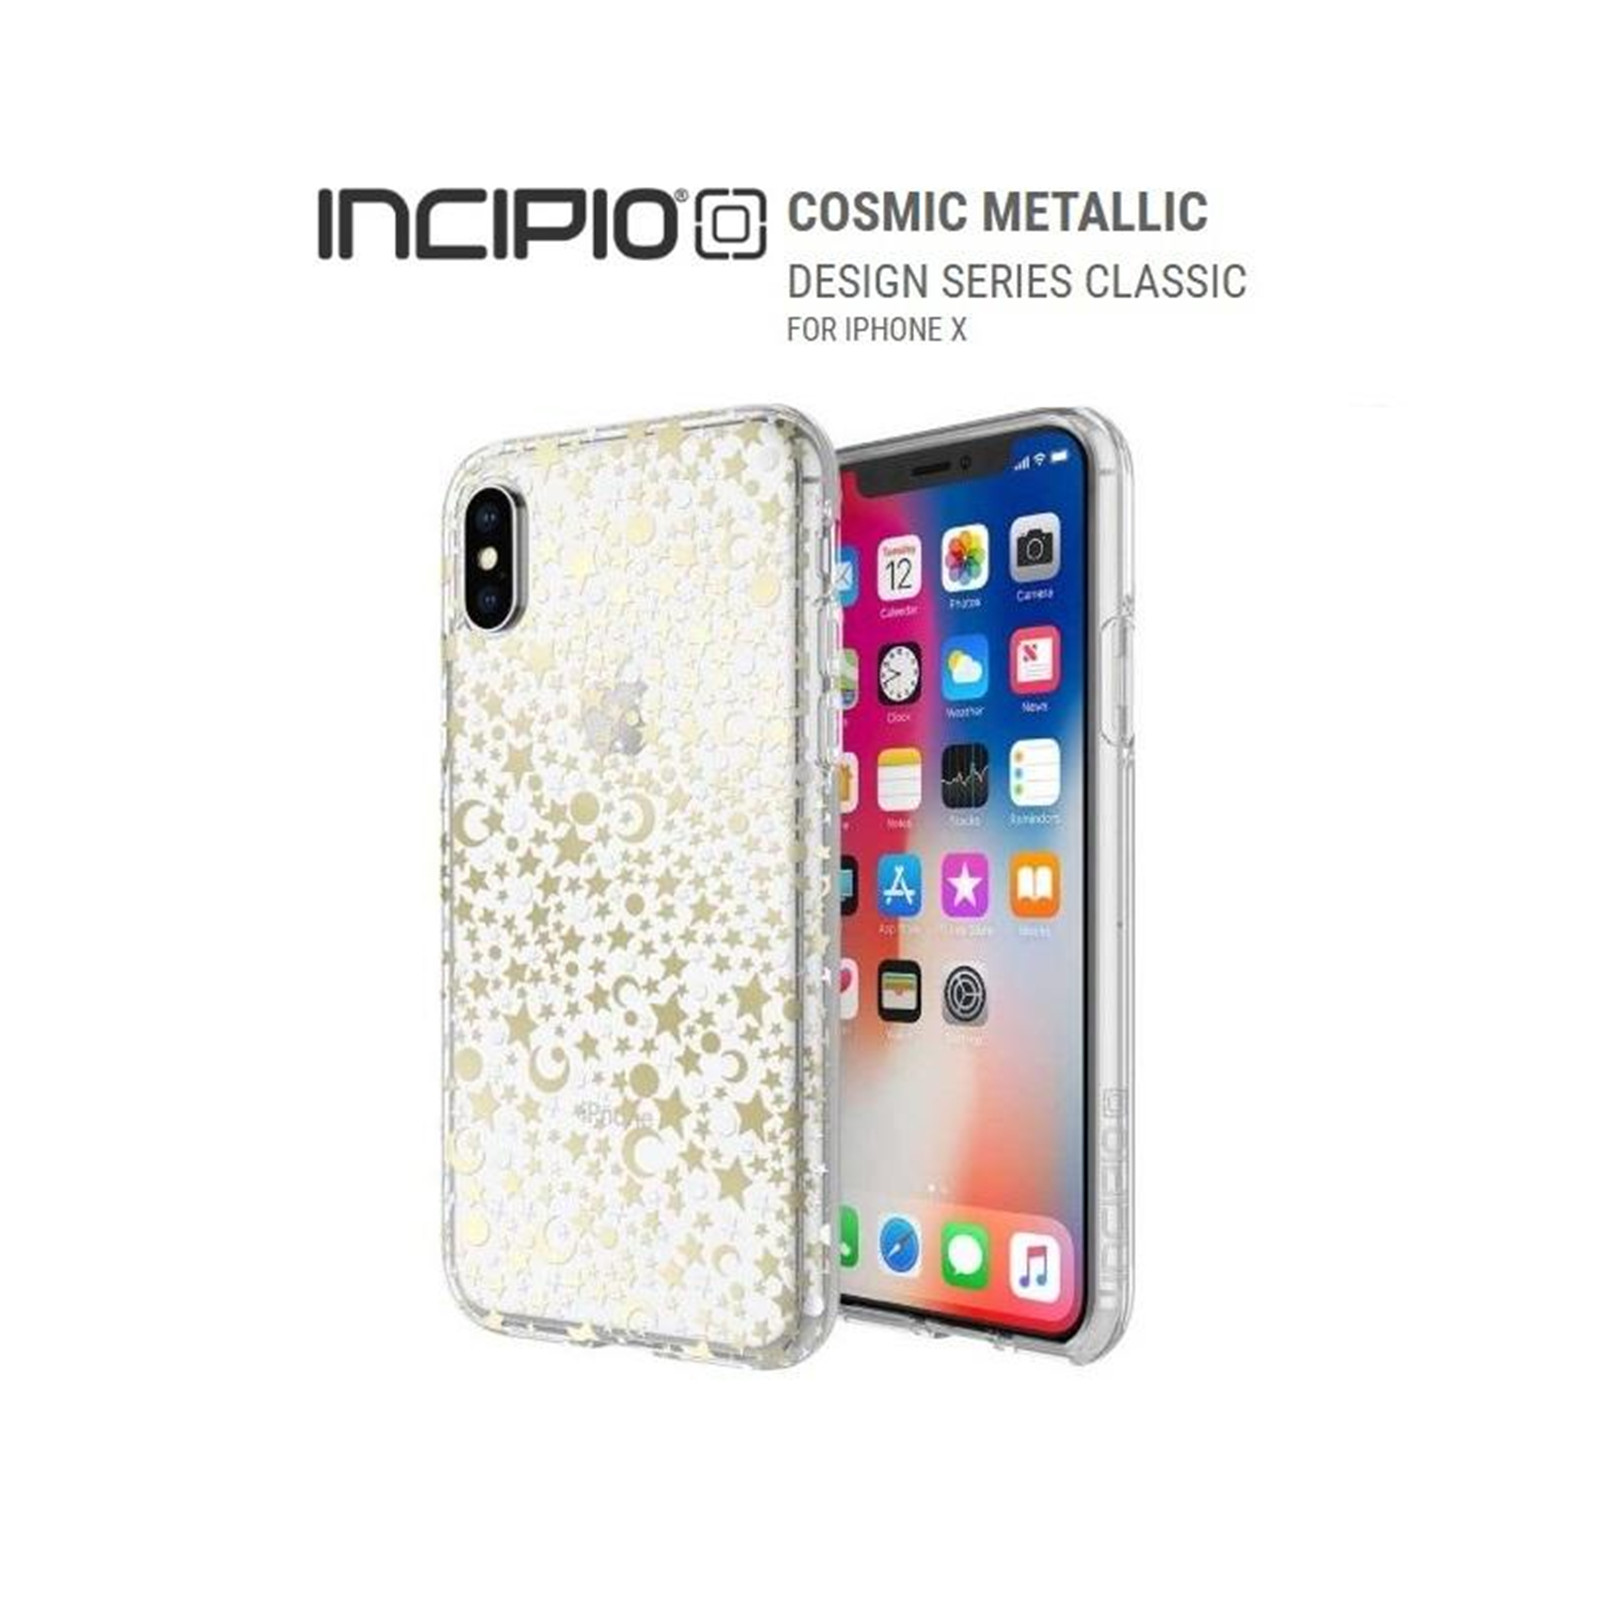 2d37fef4b5c Buy the INCIPIO Design Series -Classic for iPhone X / Xs -Cosmic M ...